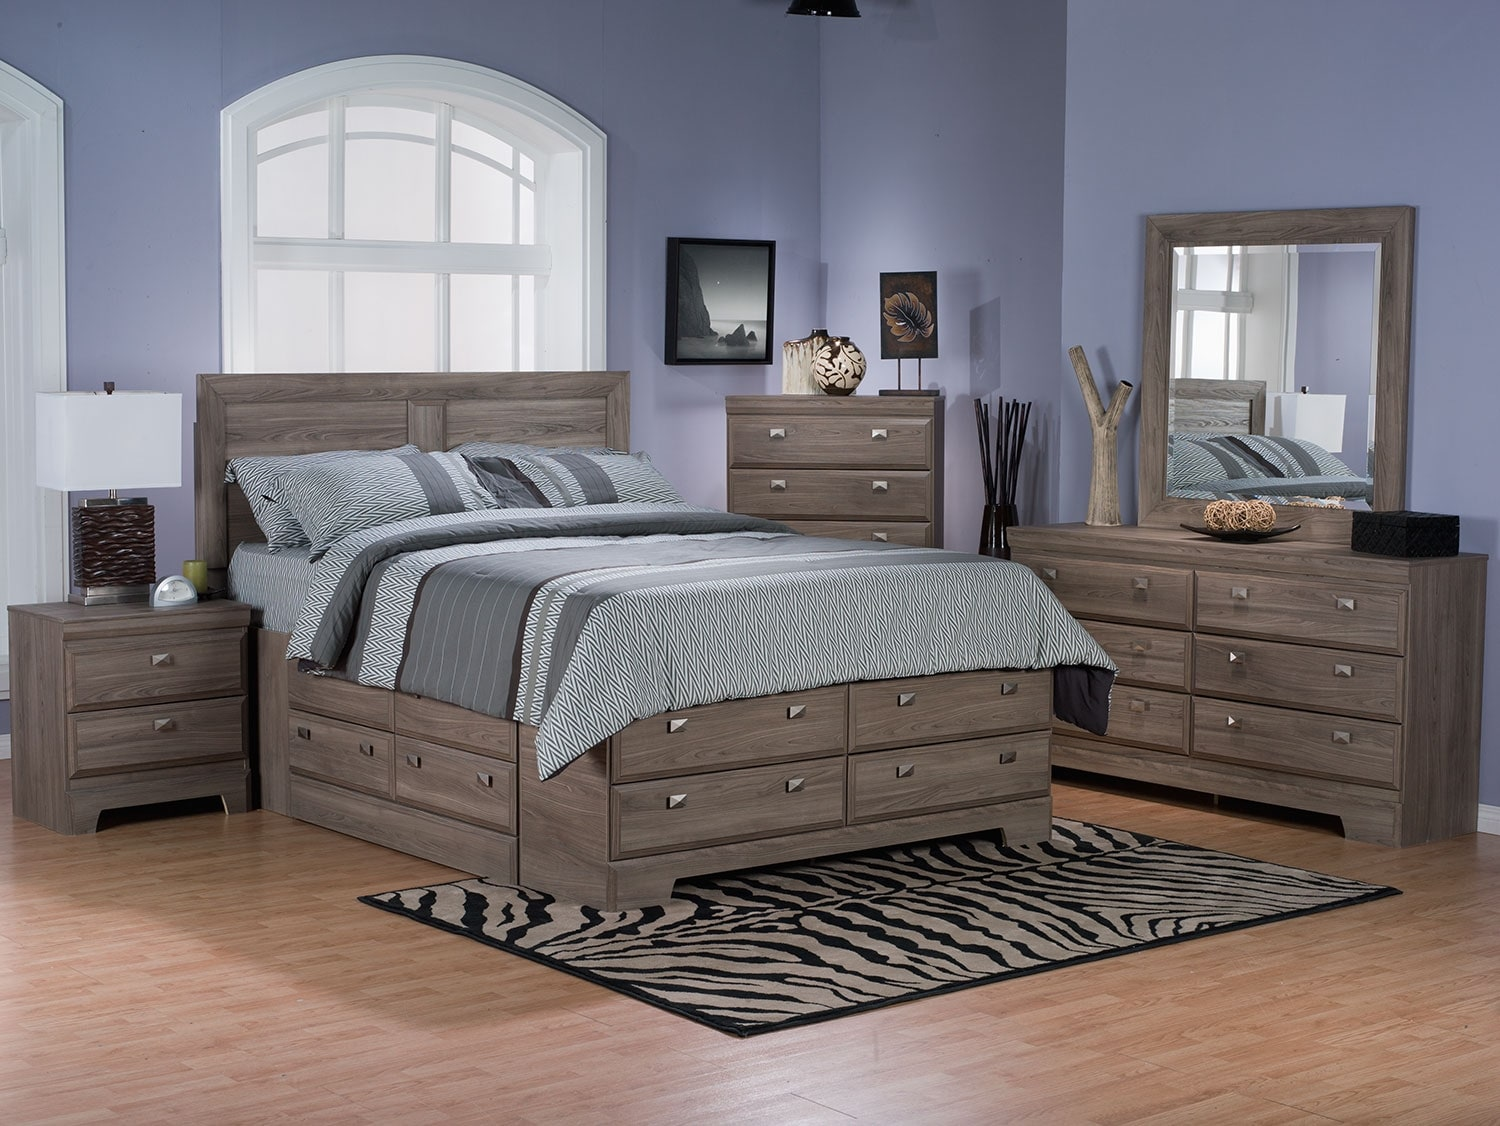 Bedroom Furniture - Yorkdale Light 8-Piece Full Storage Bedroom Package